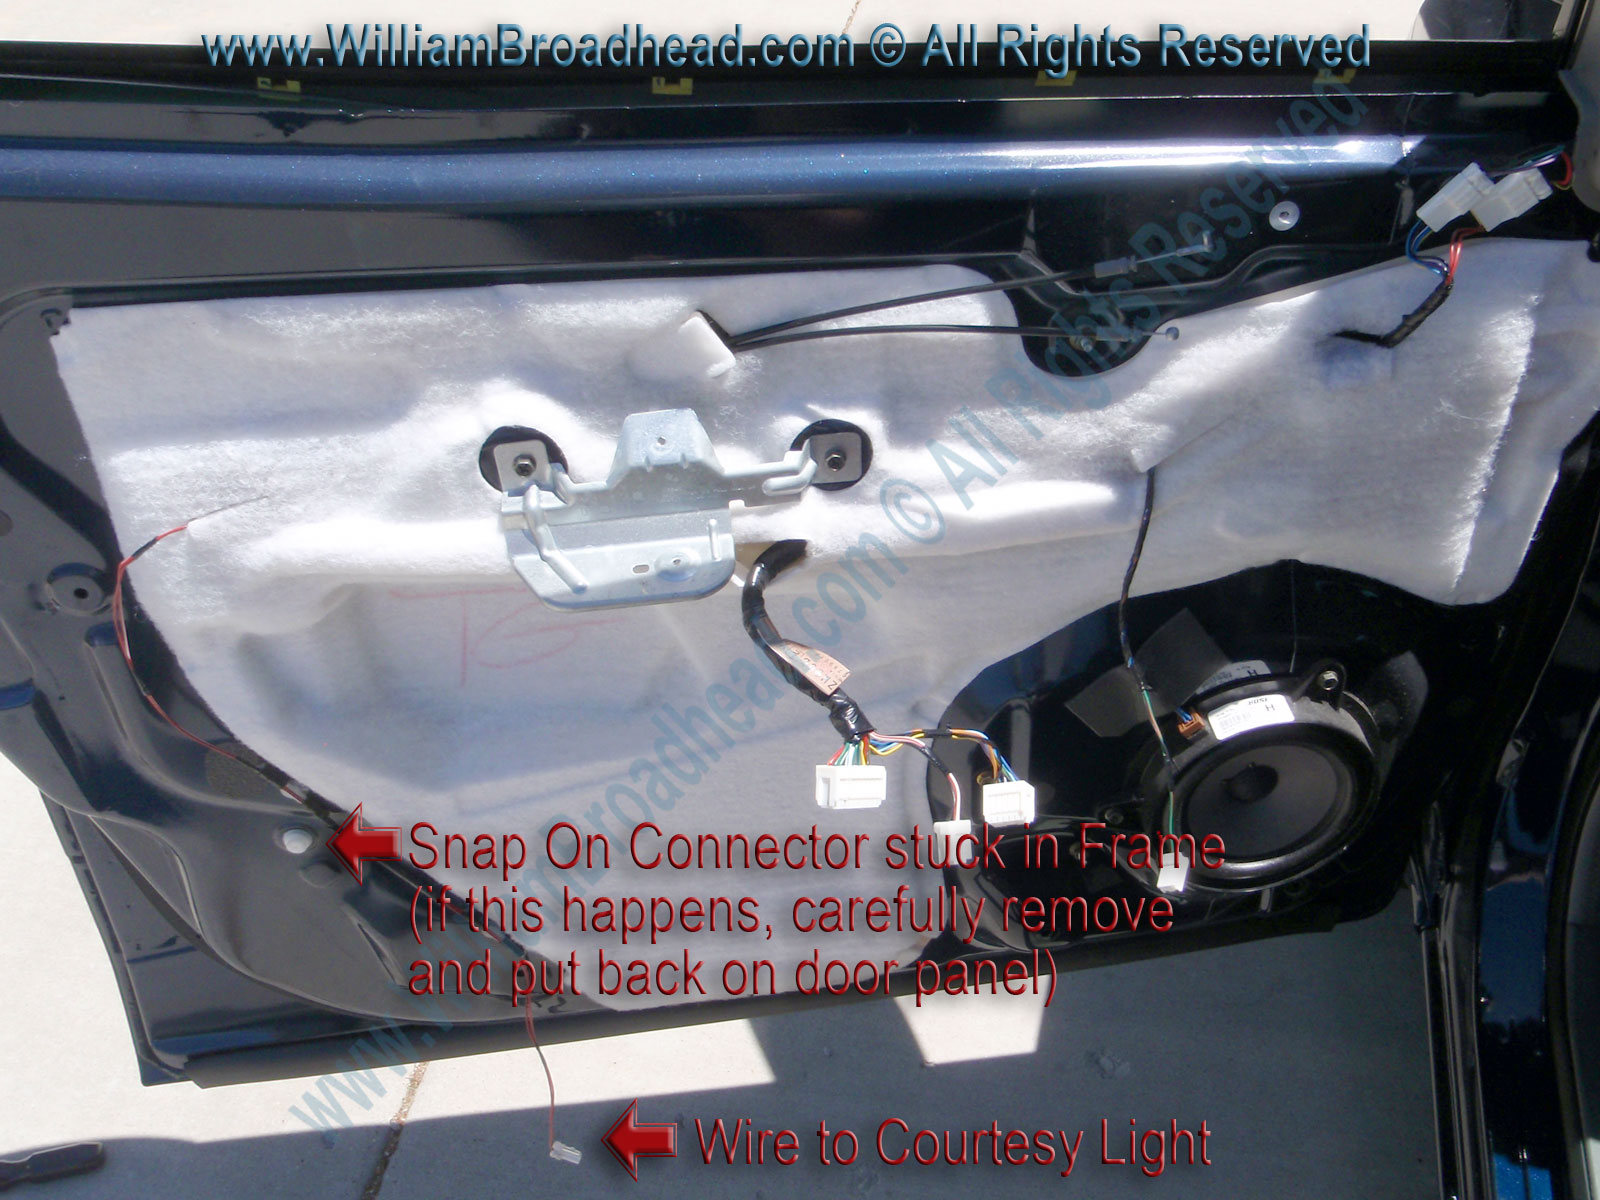 Fixing A Nissan Quest Window Motor William Broadhead 2006 Wiring Diagram Door Panel Completely Removed